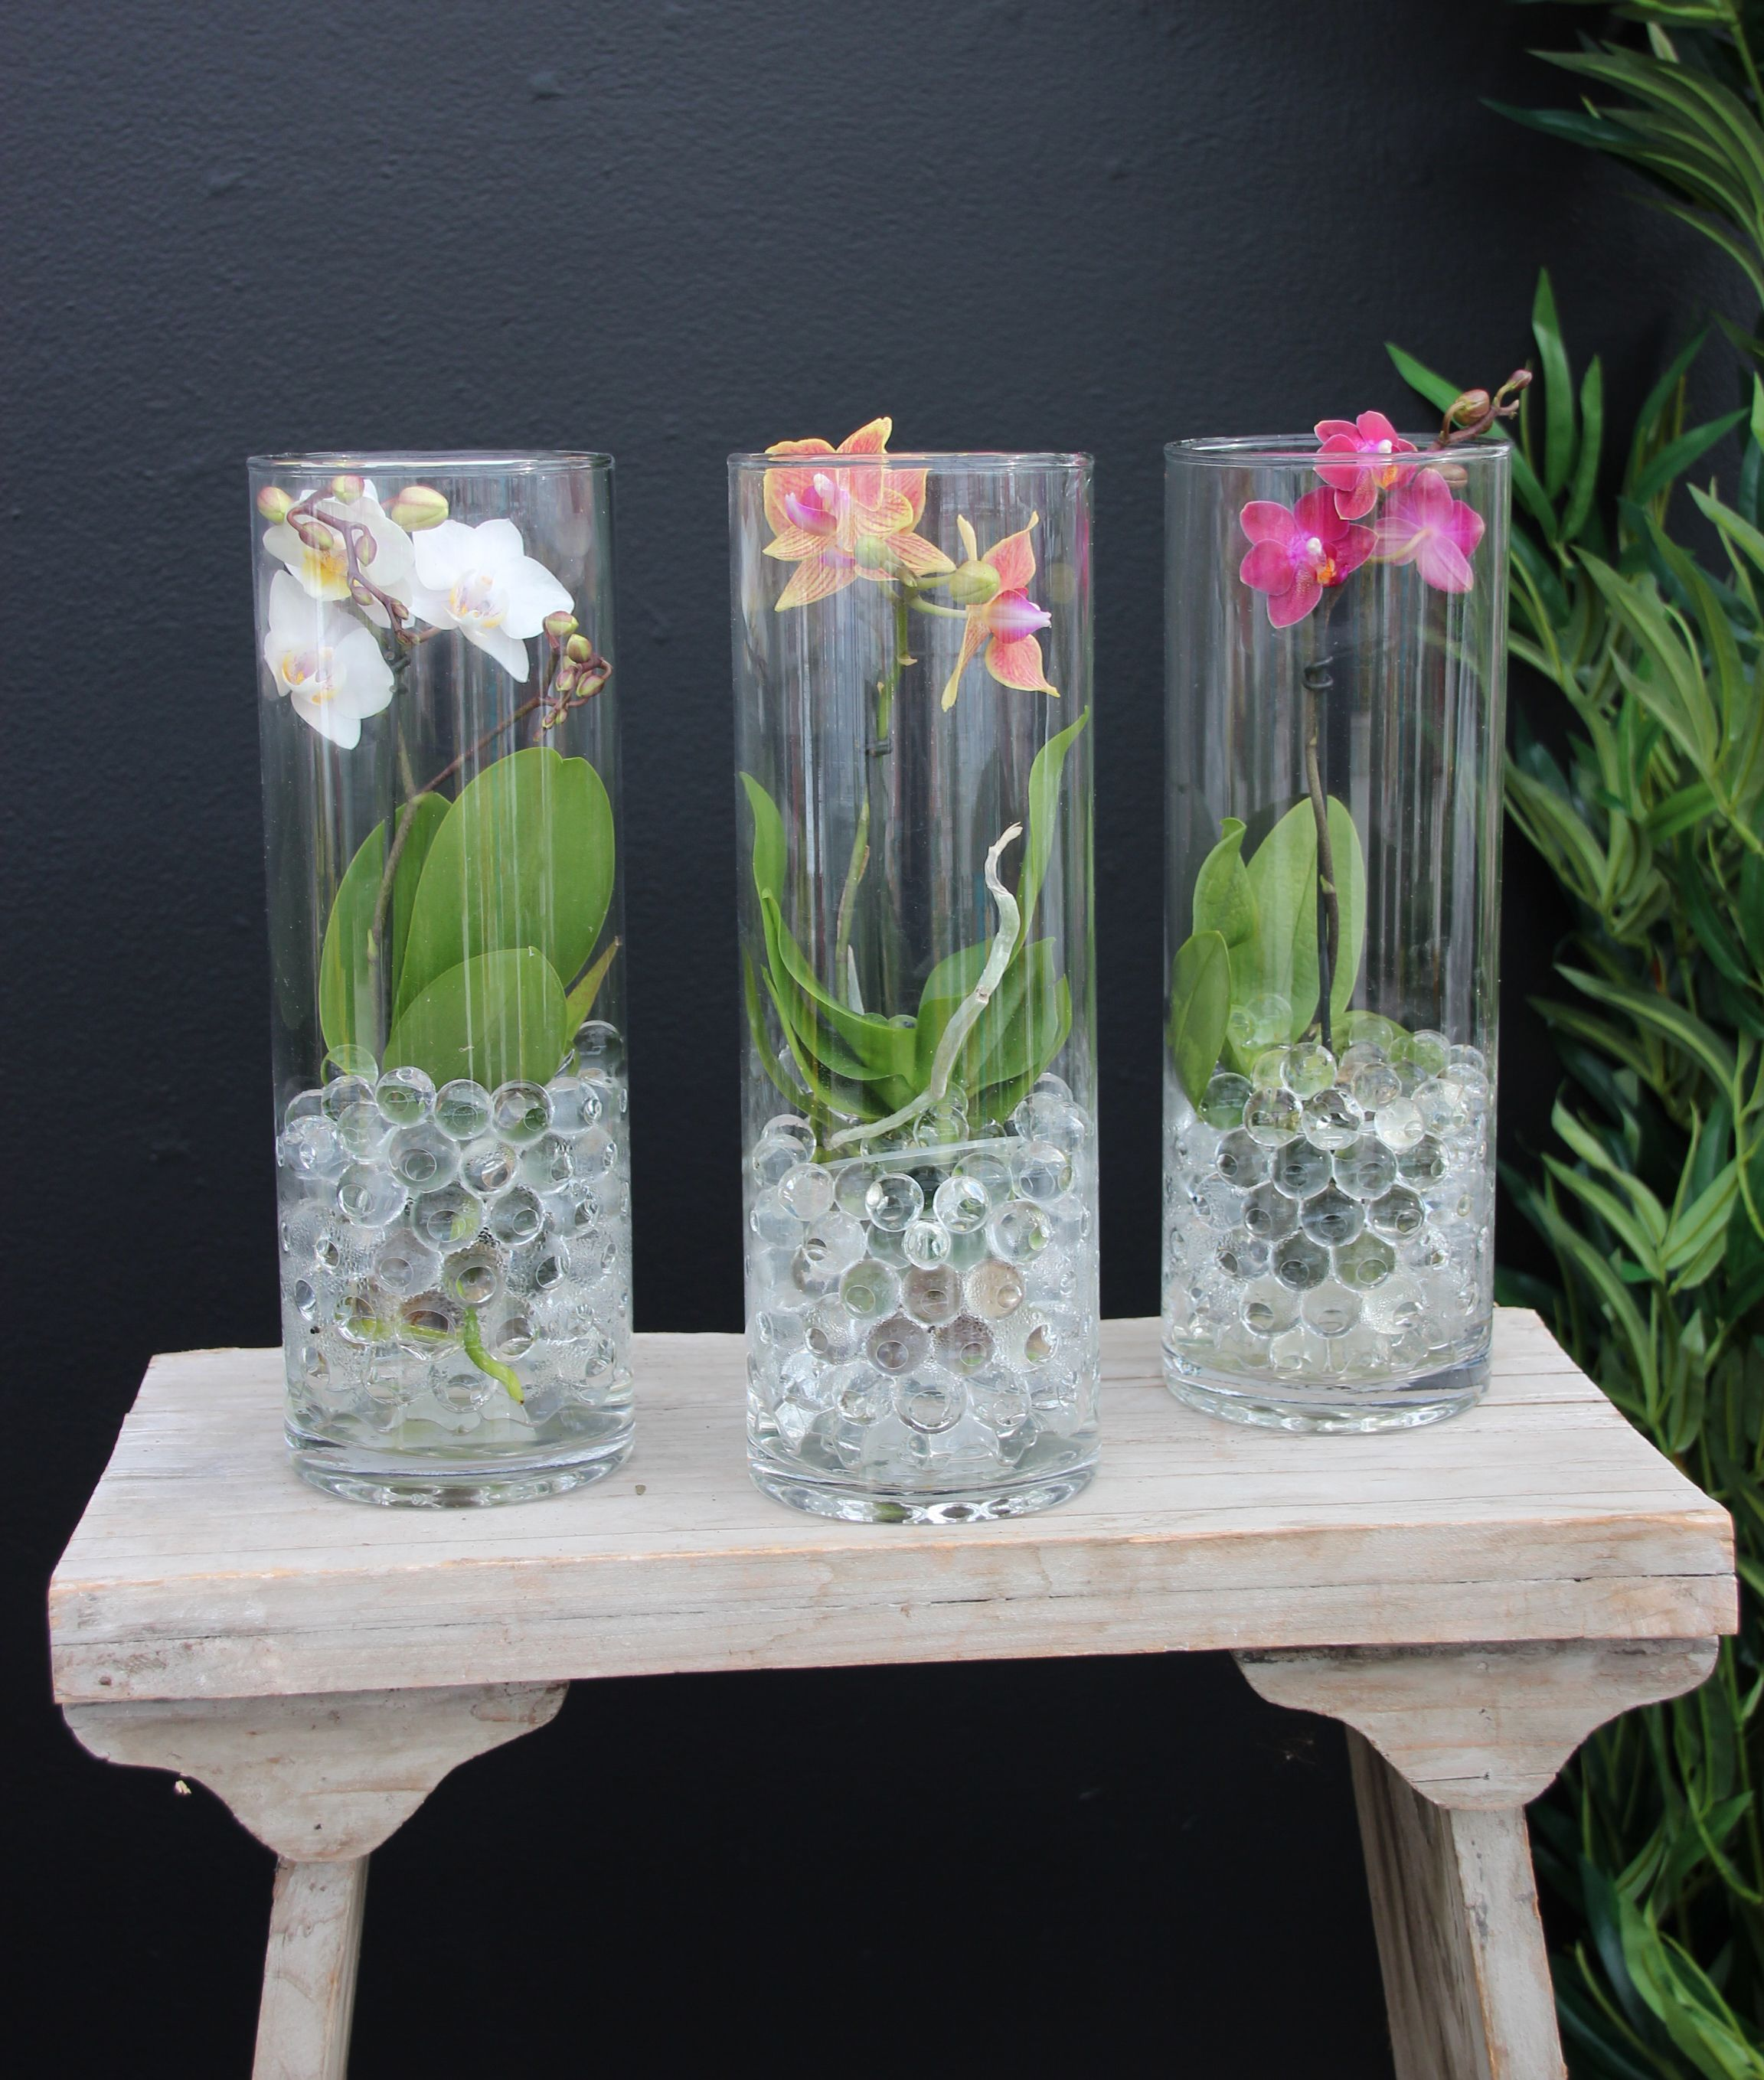 Orchids in glass containers. An elegant look that is easy